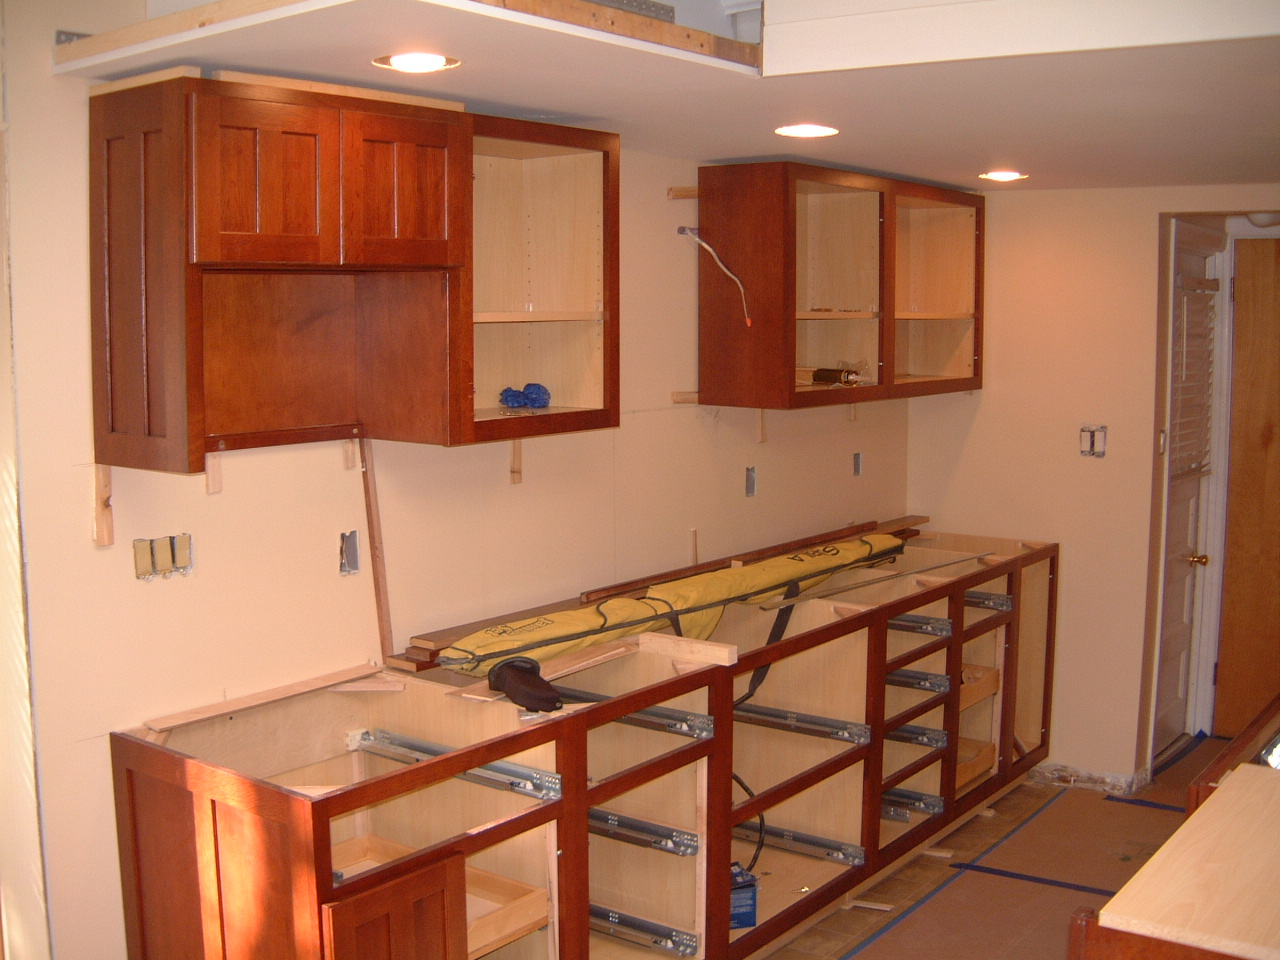 Wall Cabinet Over Kitchen Sink